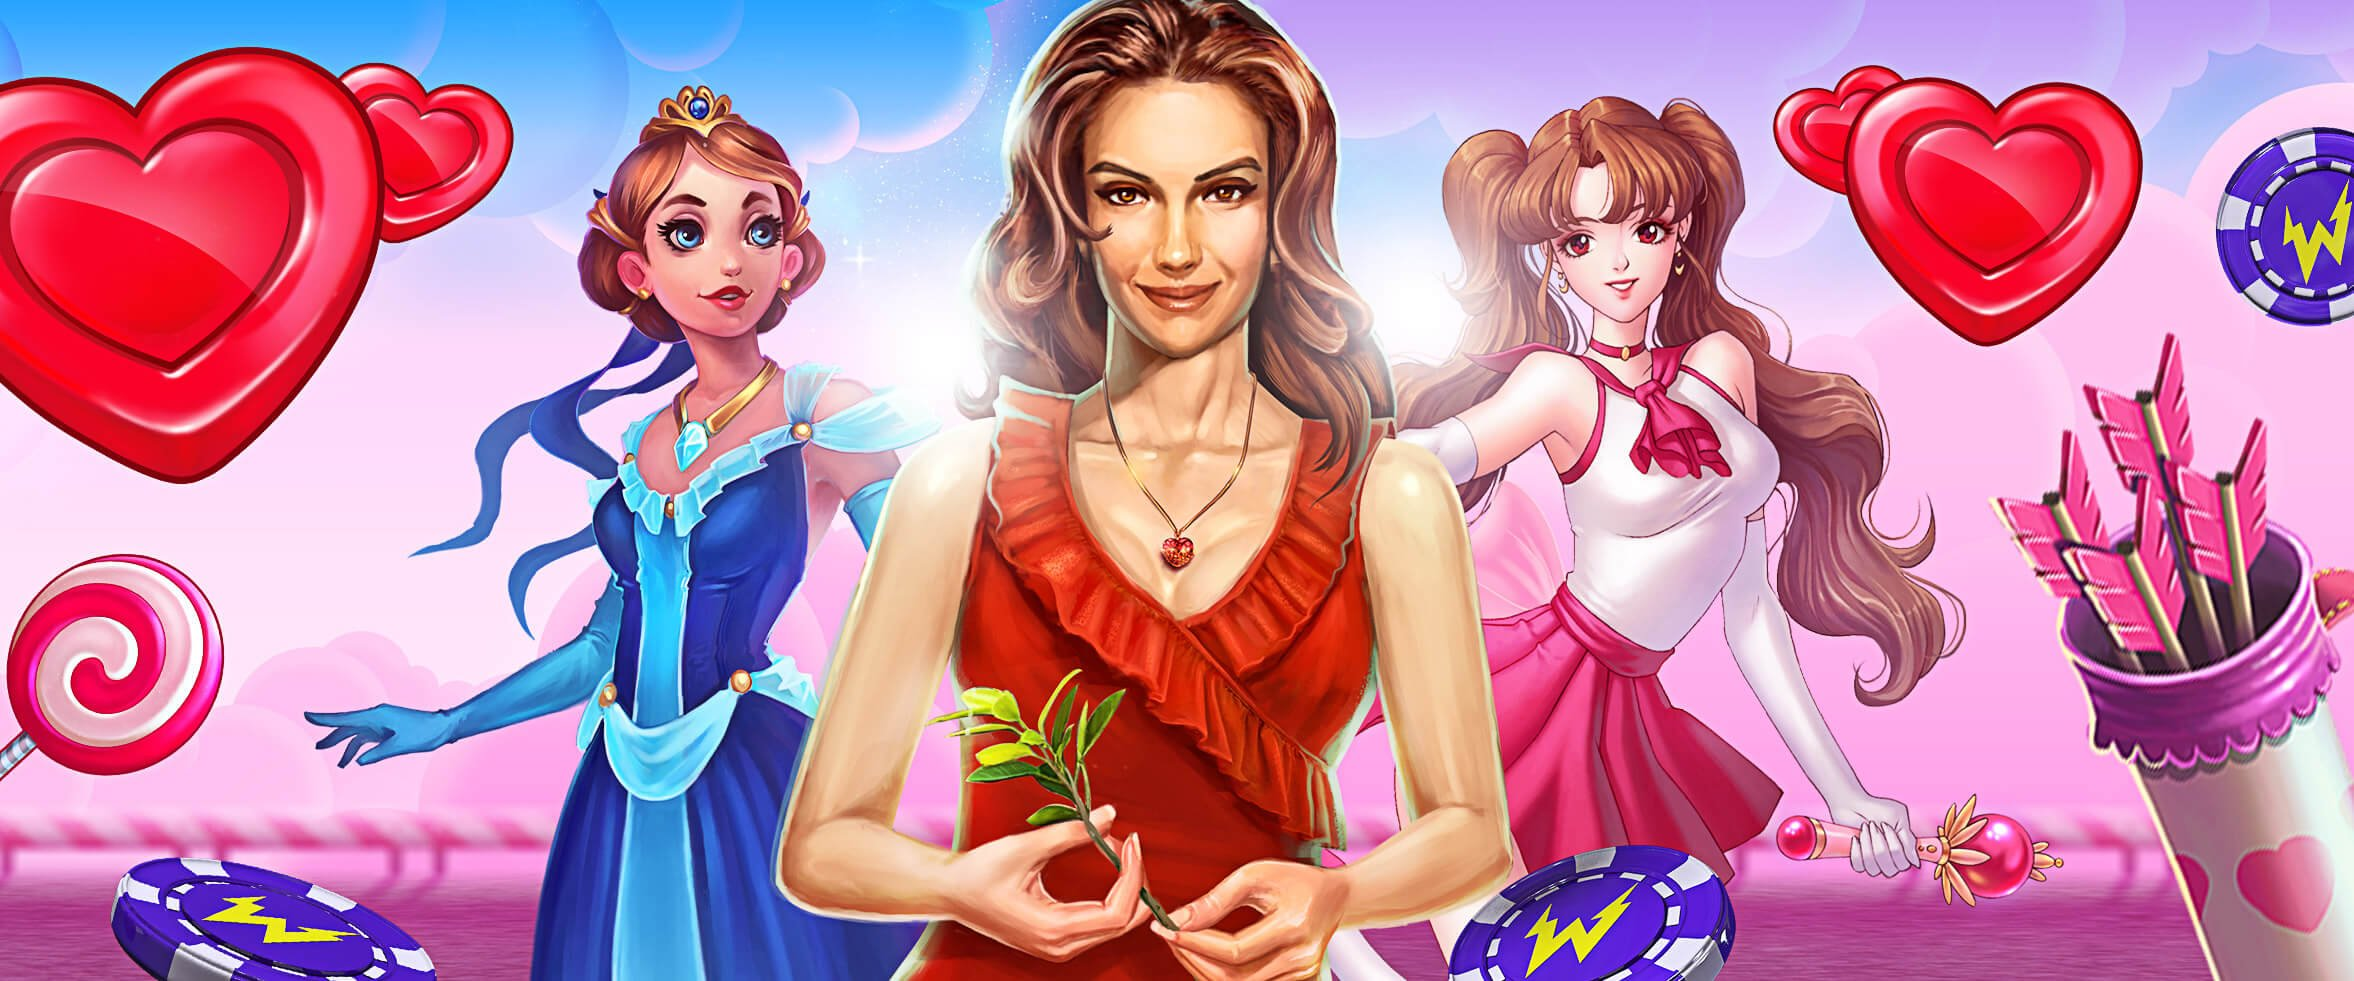 💘 Feel the Love With These Valentine-themed Slots 💘